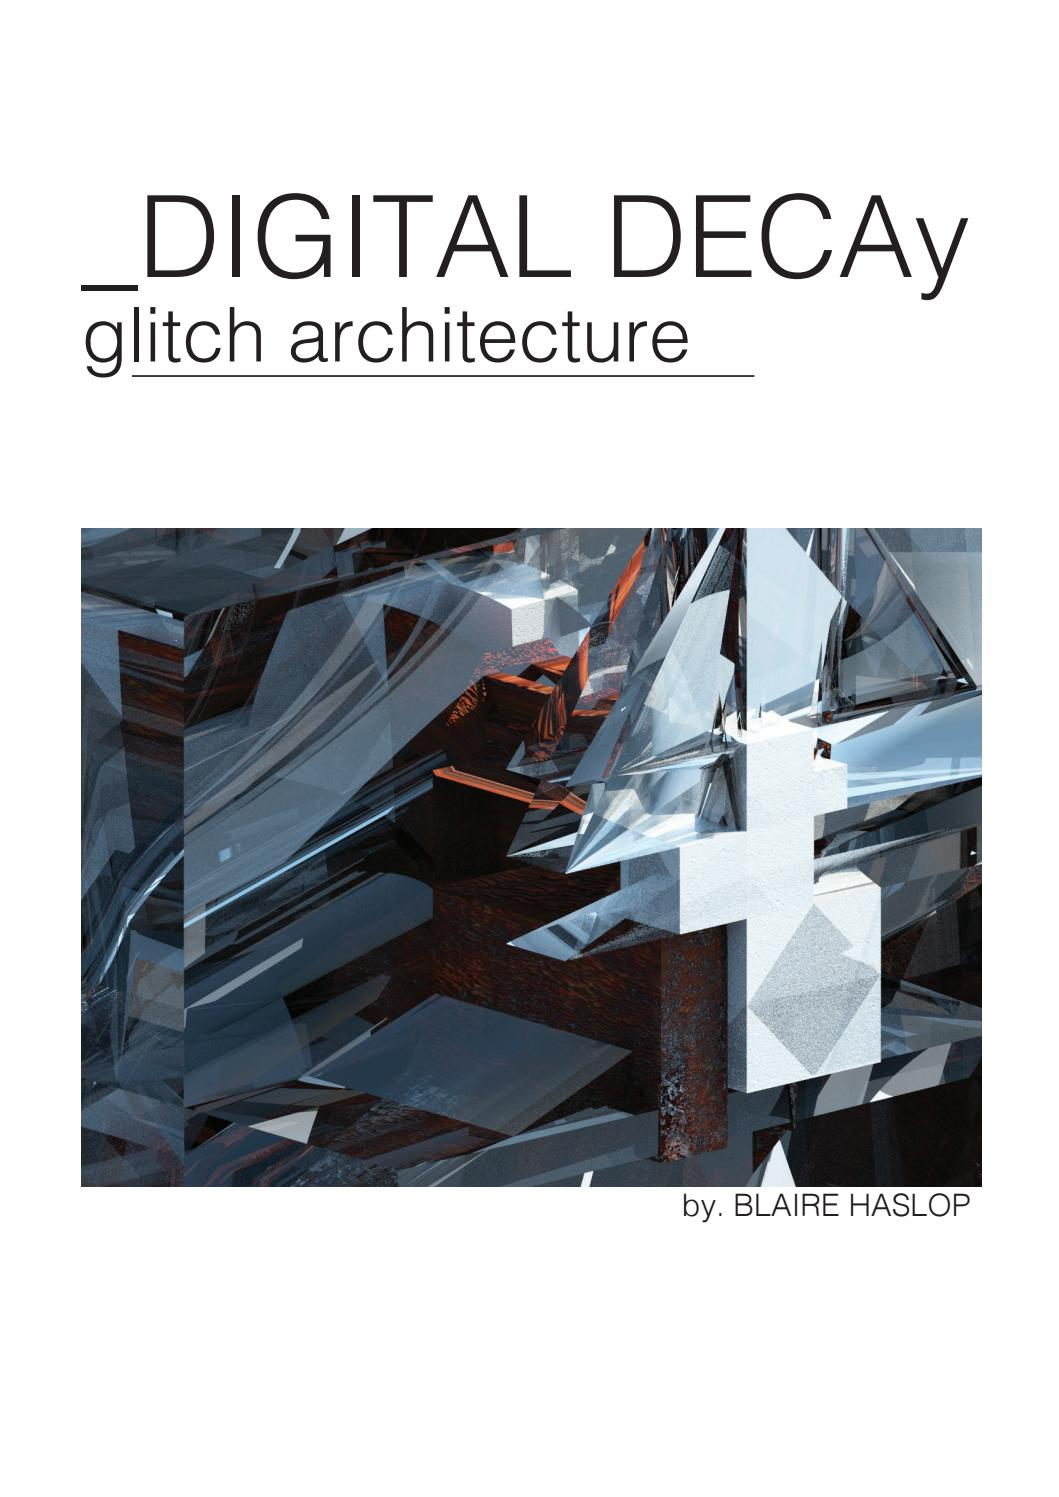 Digital Decay Glitch Architecture by Blaire